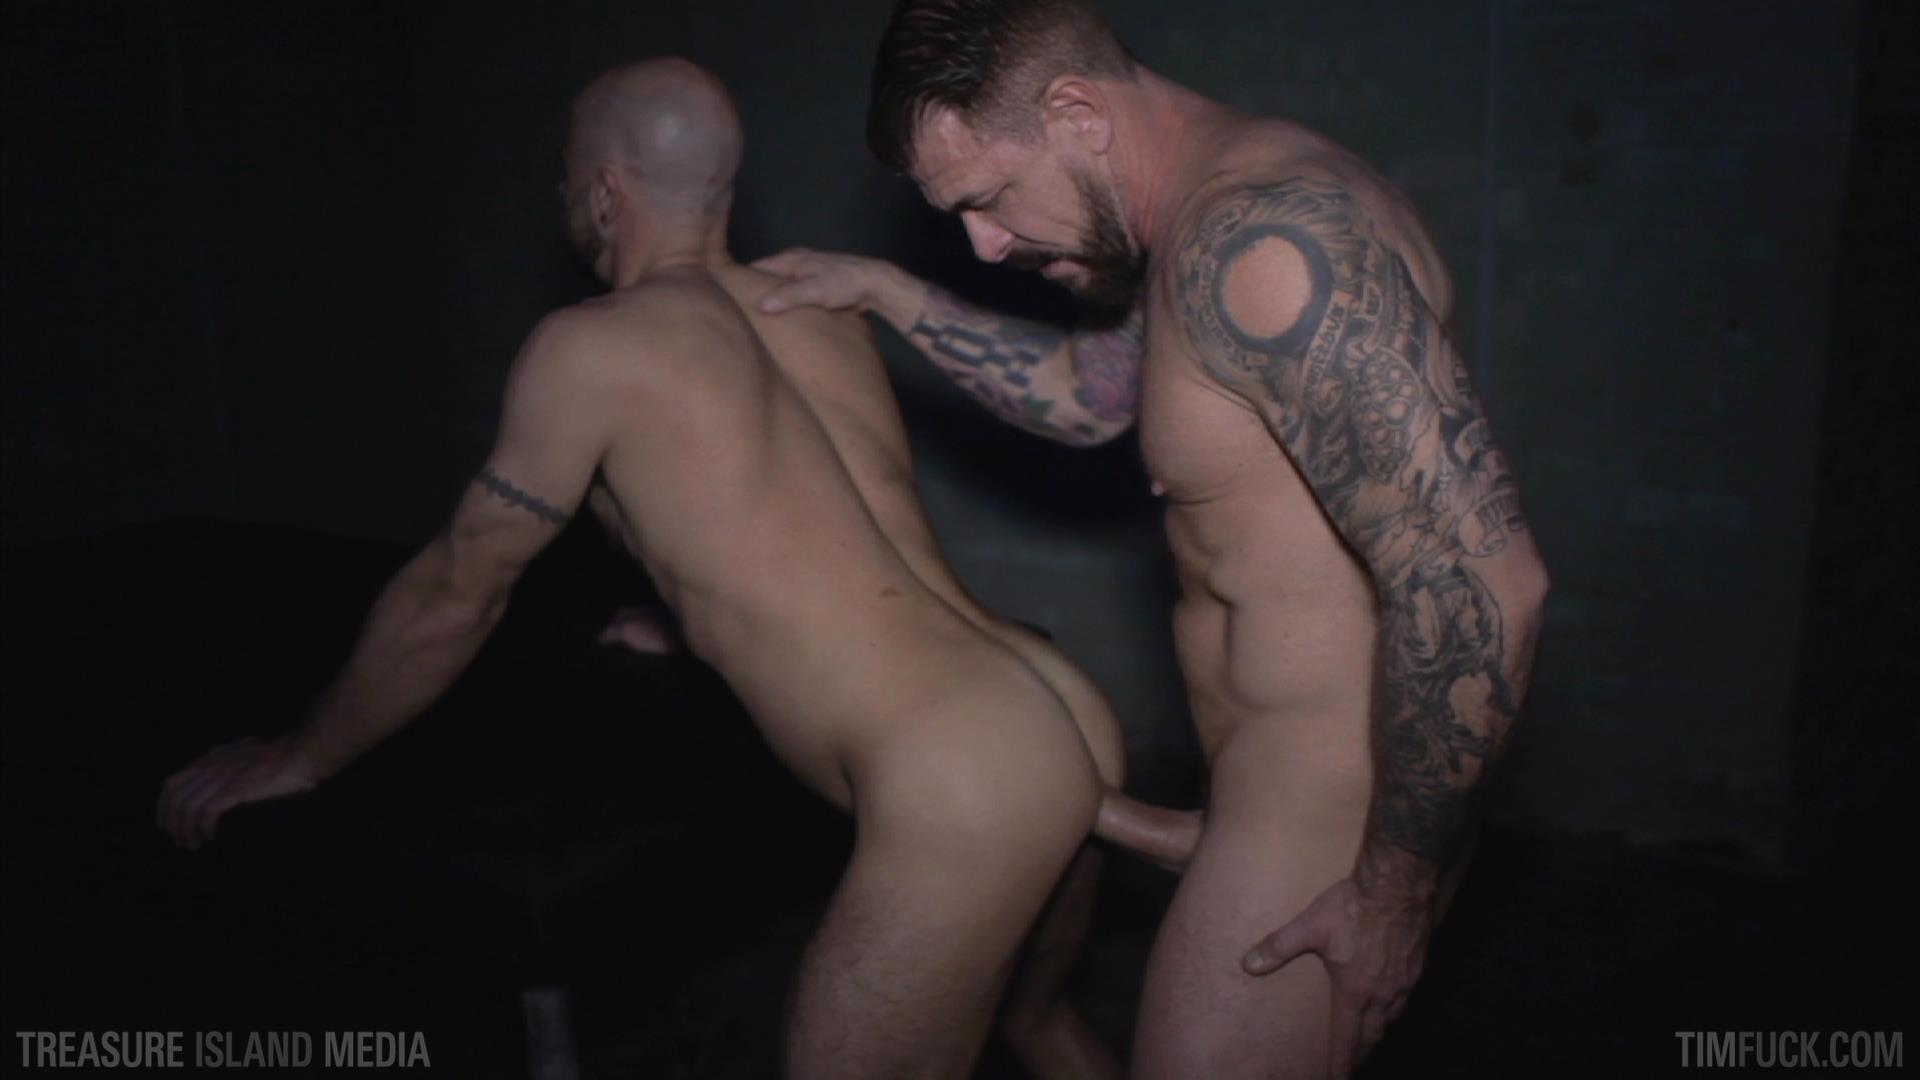 Treasure-Island-Media-TimFuck-Rocco-Steele-and-Ben-Statham-Bareback-Amateur-Gay-Porn-04 Treasure Island Media: Rocco Steele and Ben Statham Bareback In A London Bathhouse